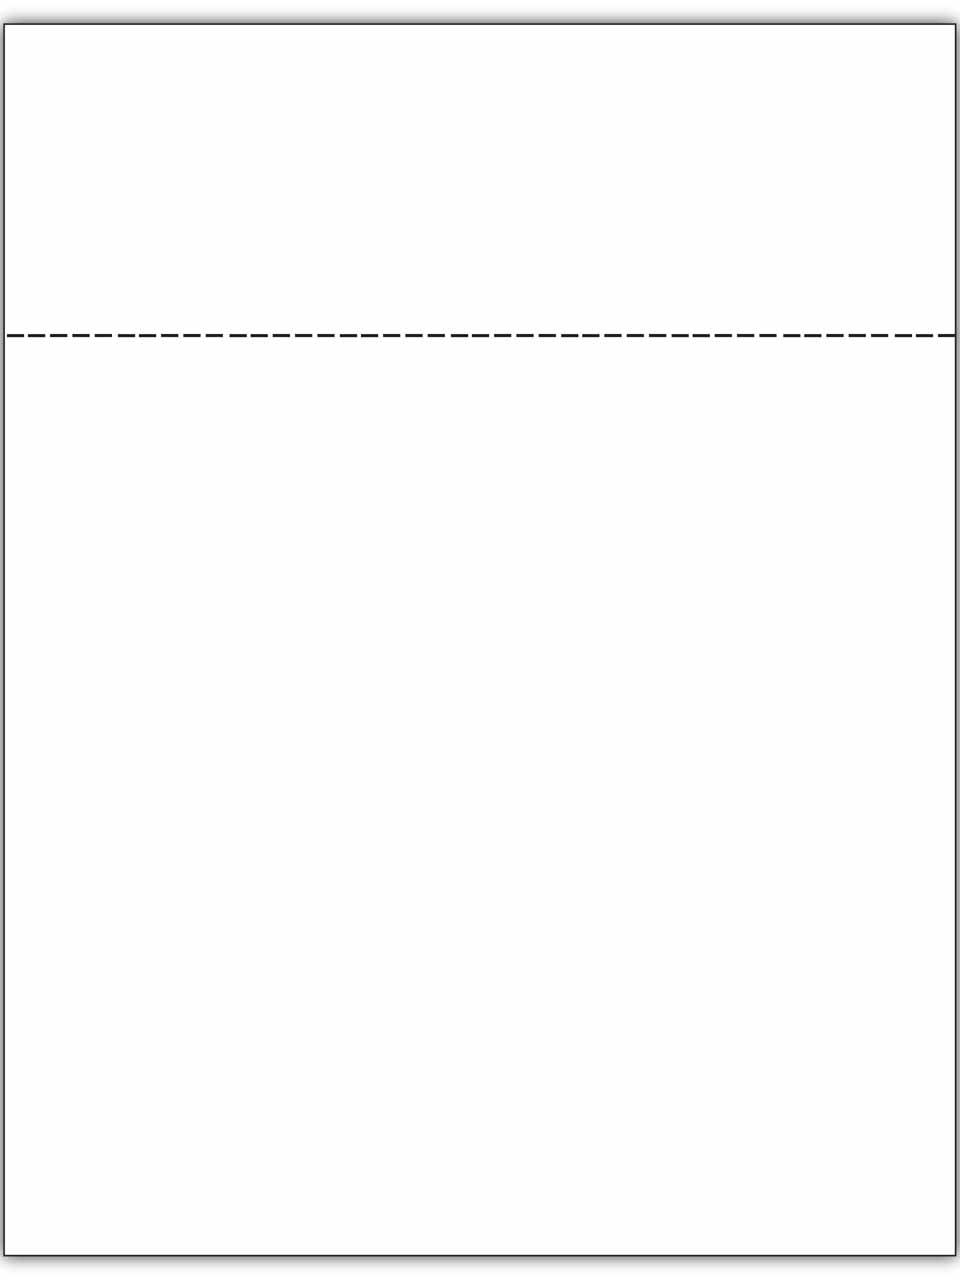 blank statement invoice paper billing invoices and statements perforated invoice paper